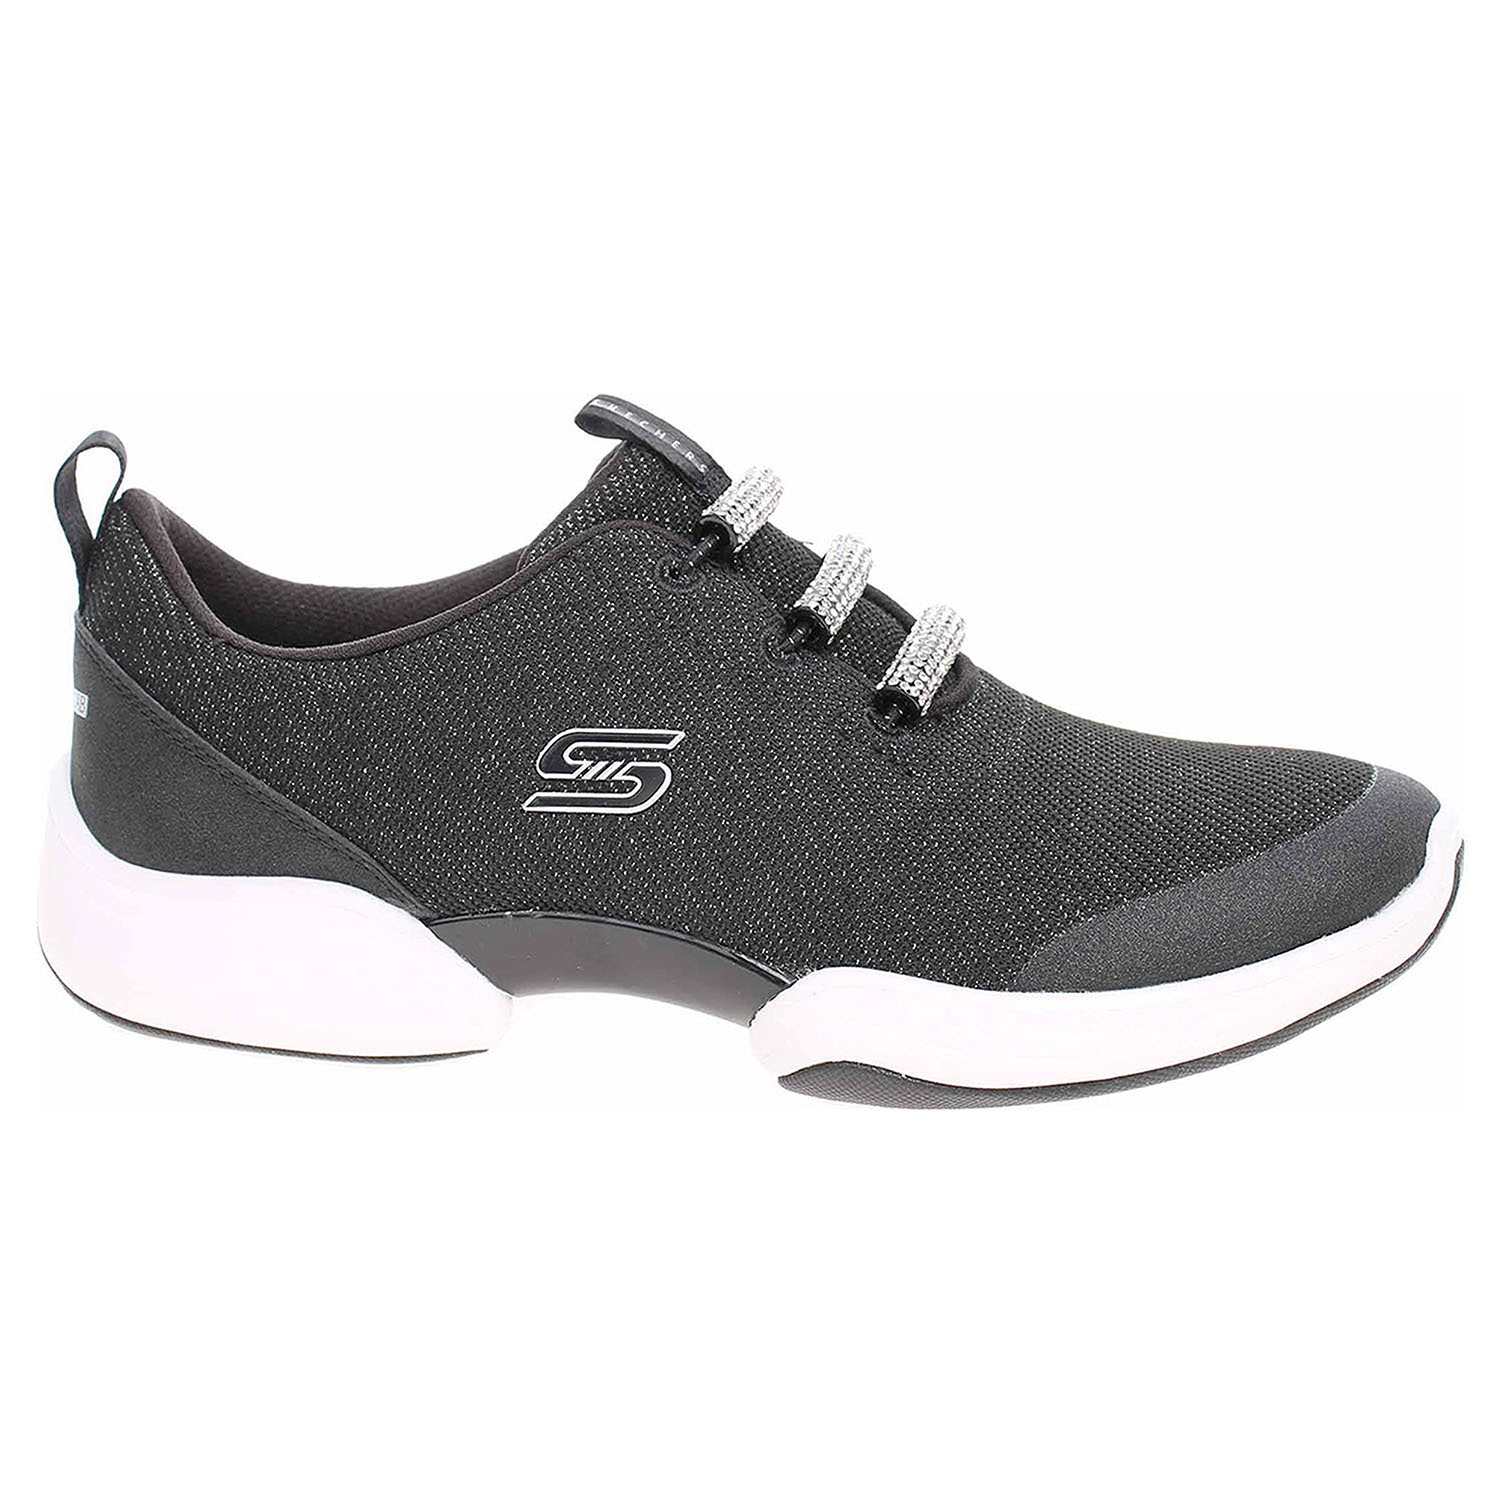 Skechers Skech-Lab - Sparkle Mood black-white 23387 BKW 39